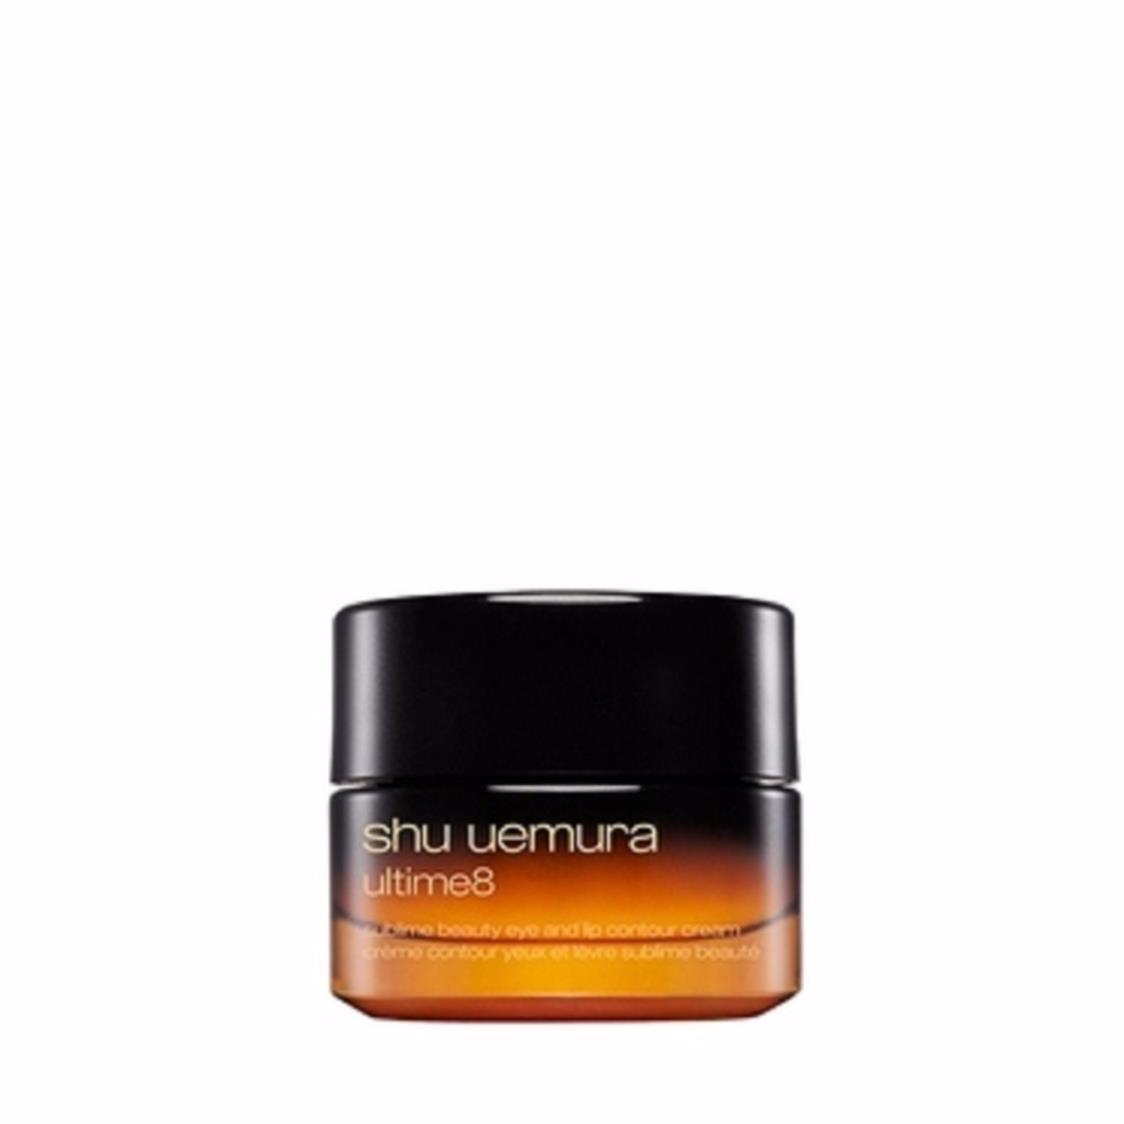 Ultime8 Sublime Beauty Eye and Lip Contour Cream